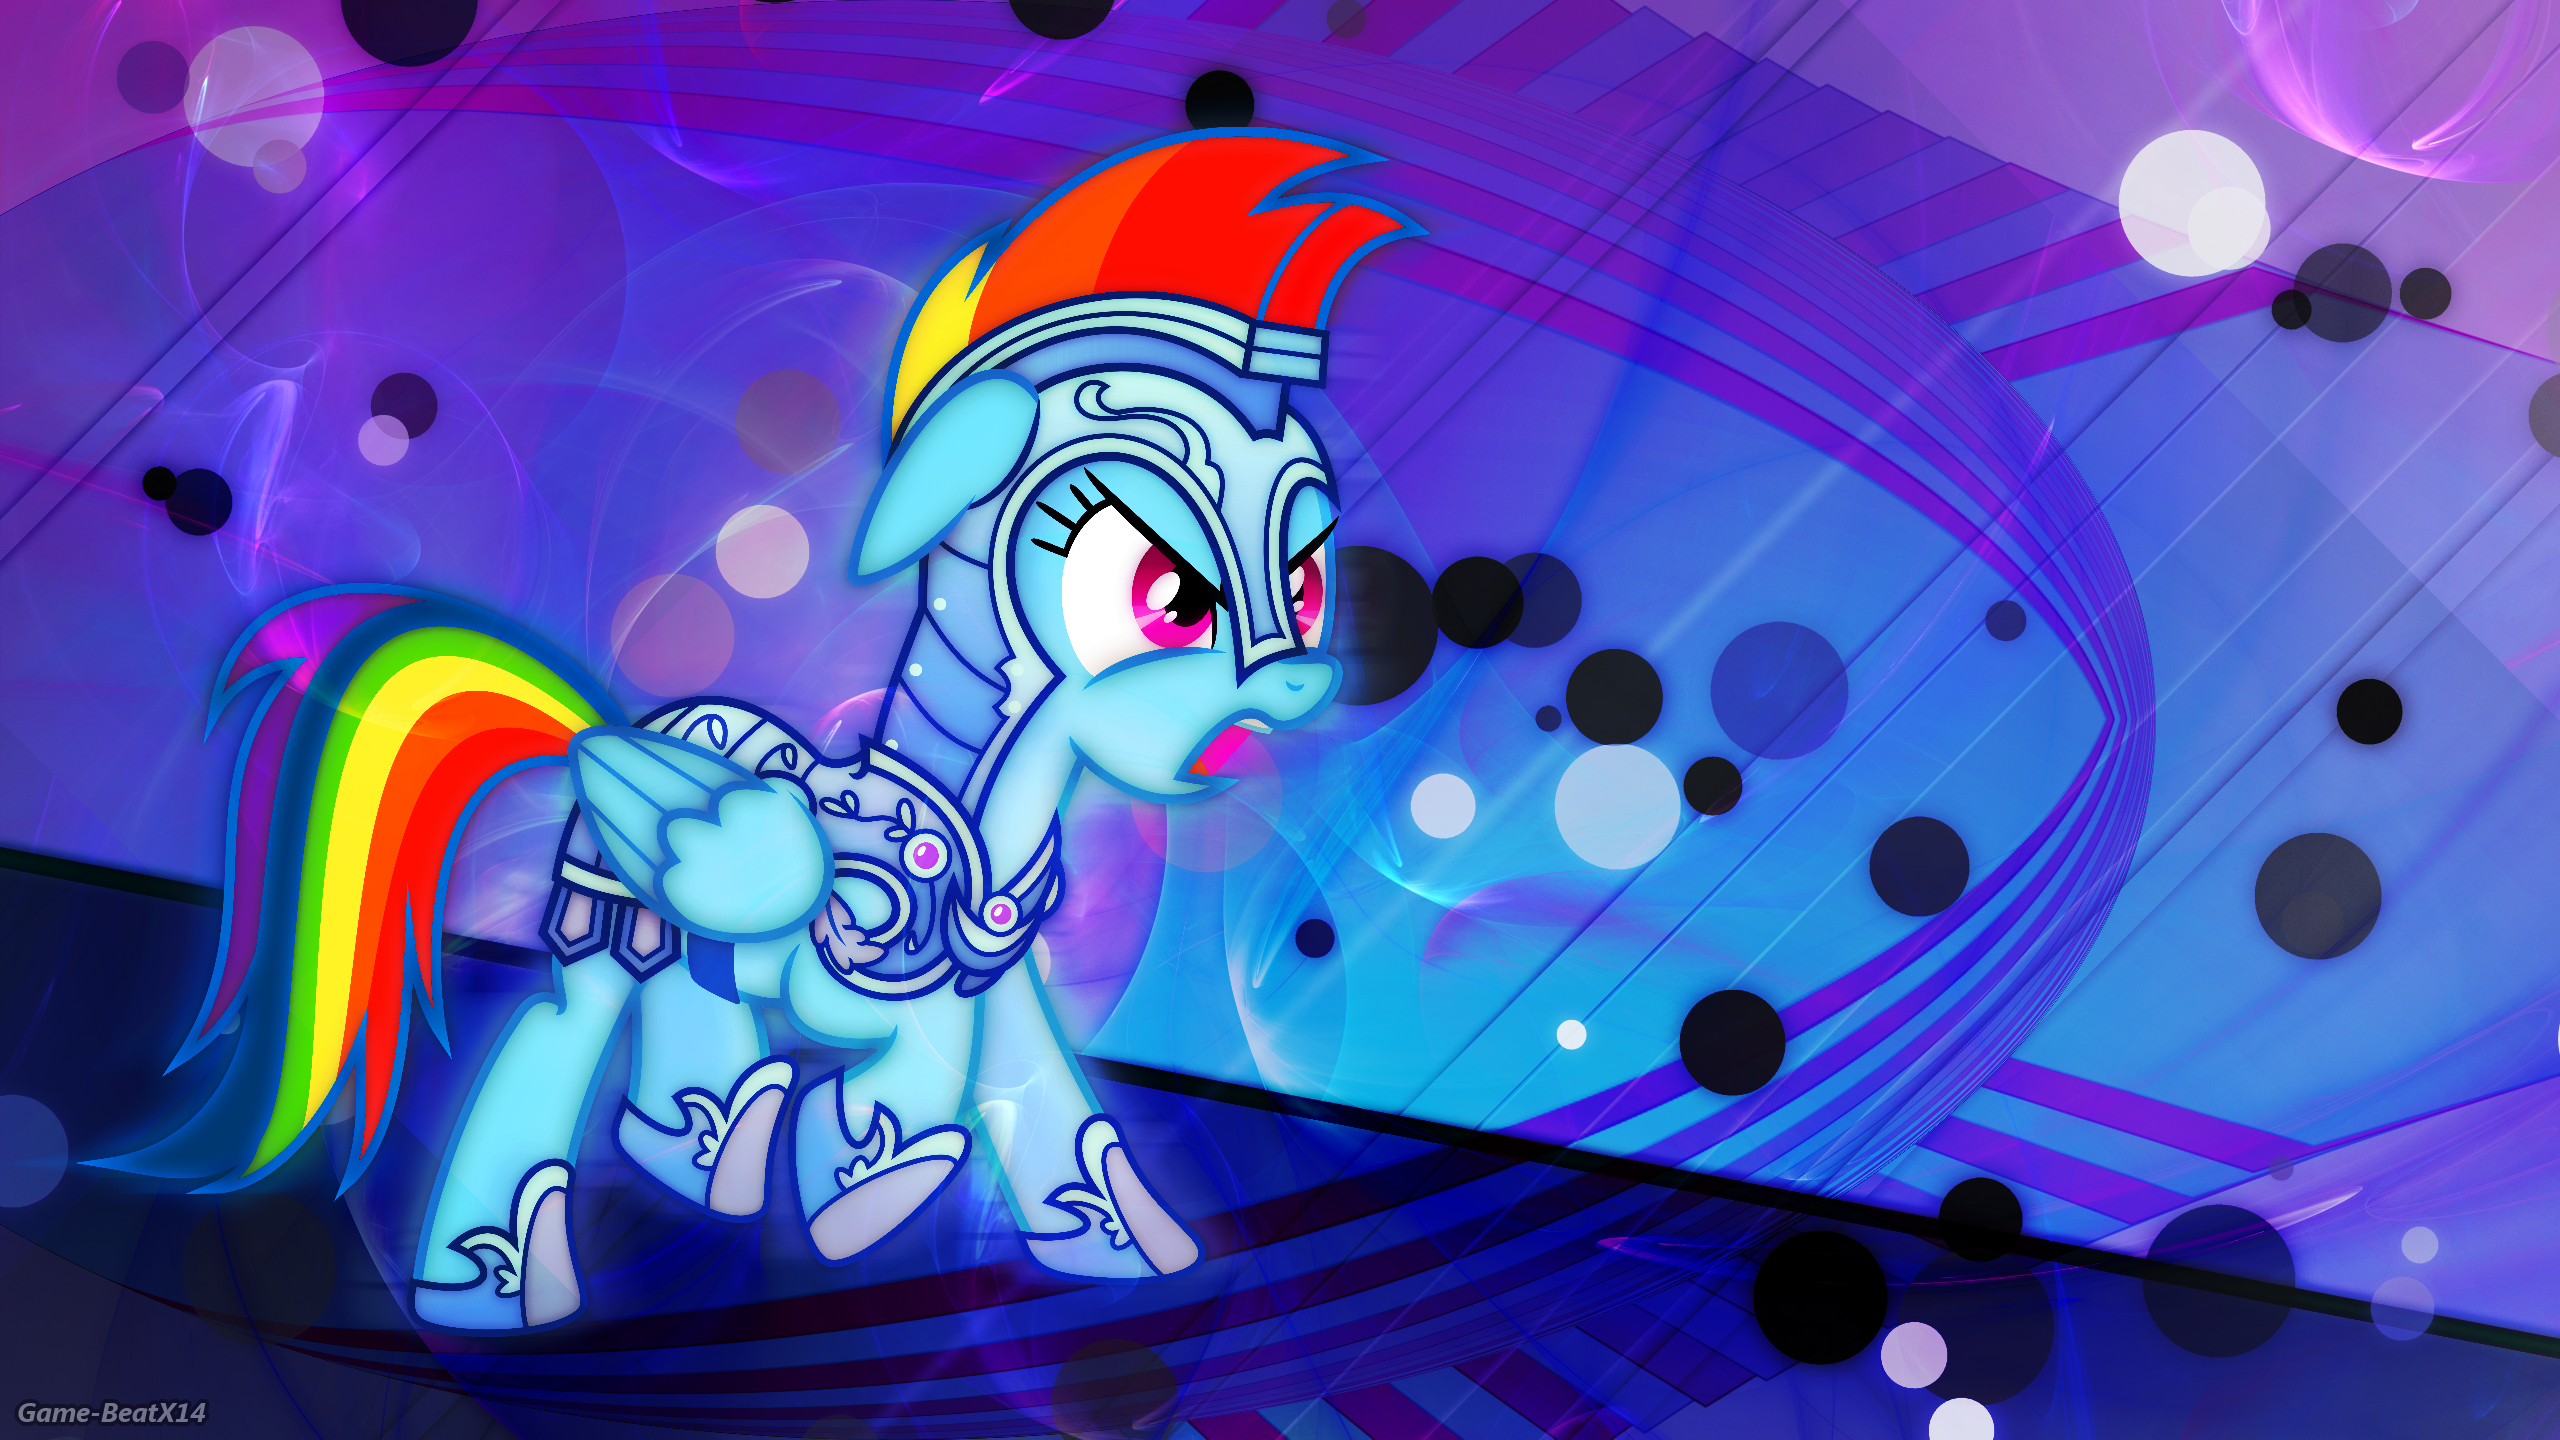 Knight Dash by Game-BeatX14 and spier17